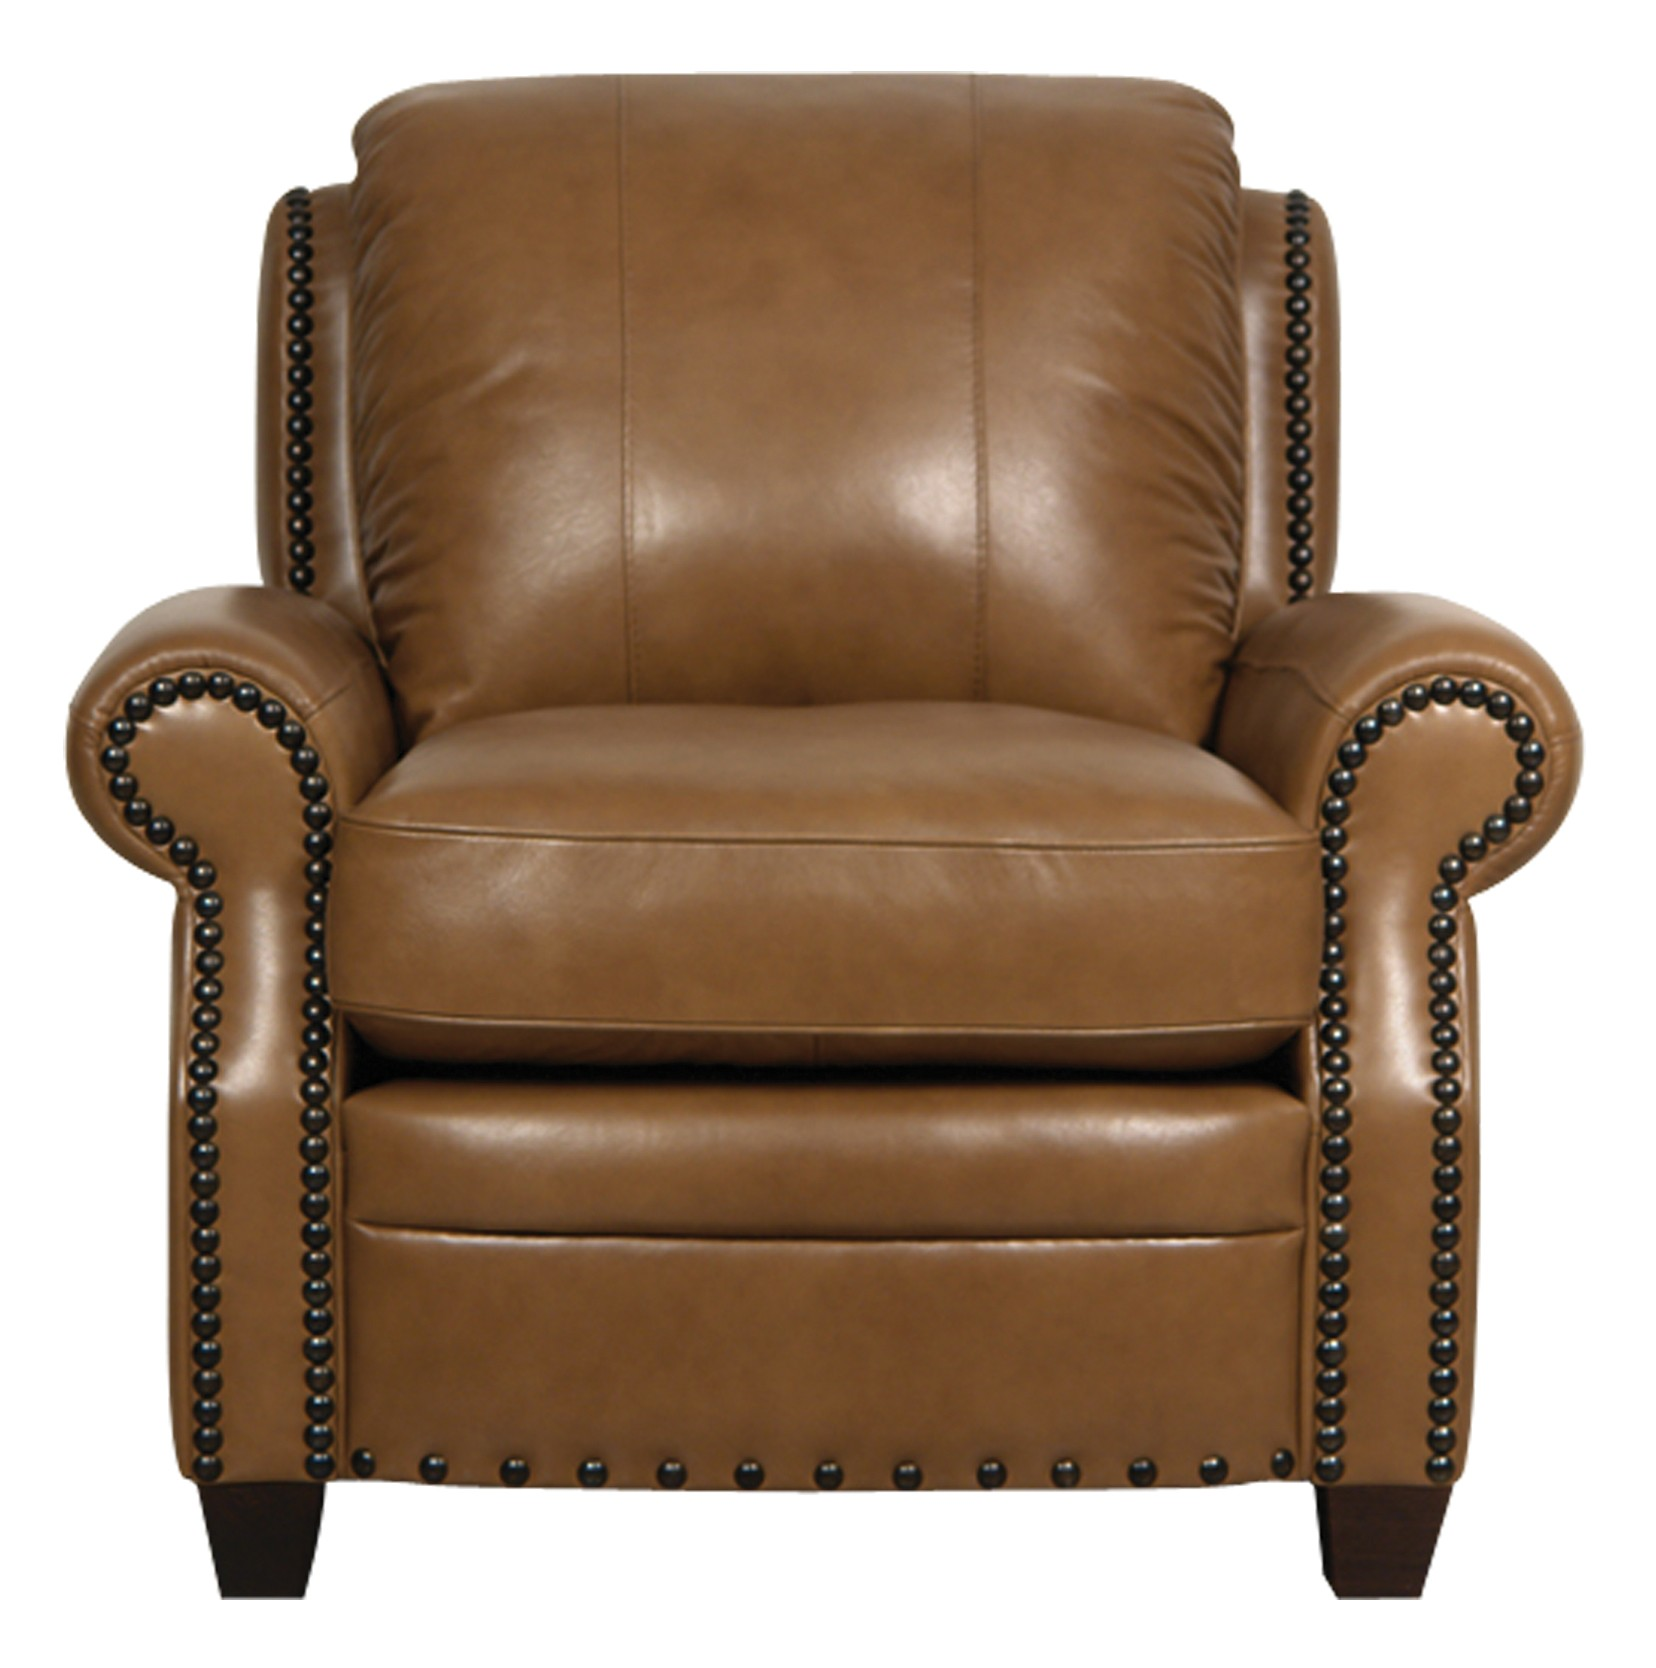 Bennett italian leather chair from luke leather coleman for Italian leather furniture